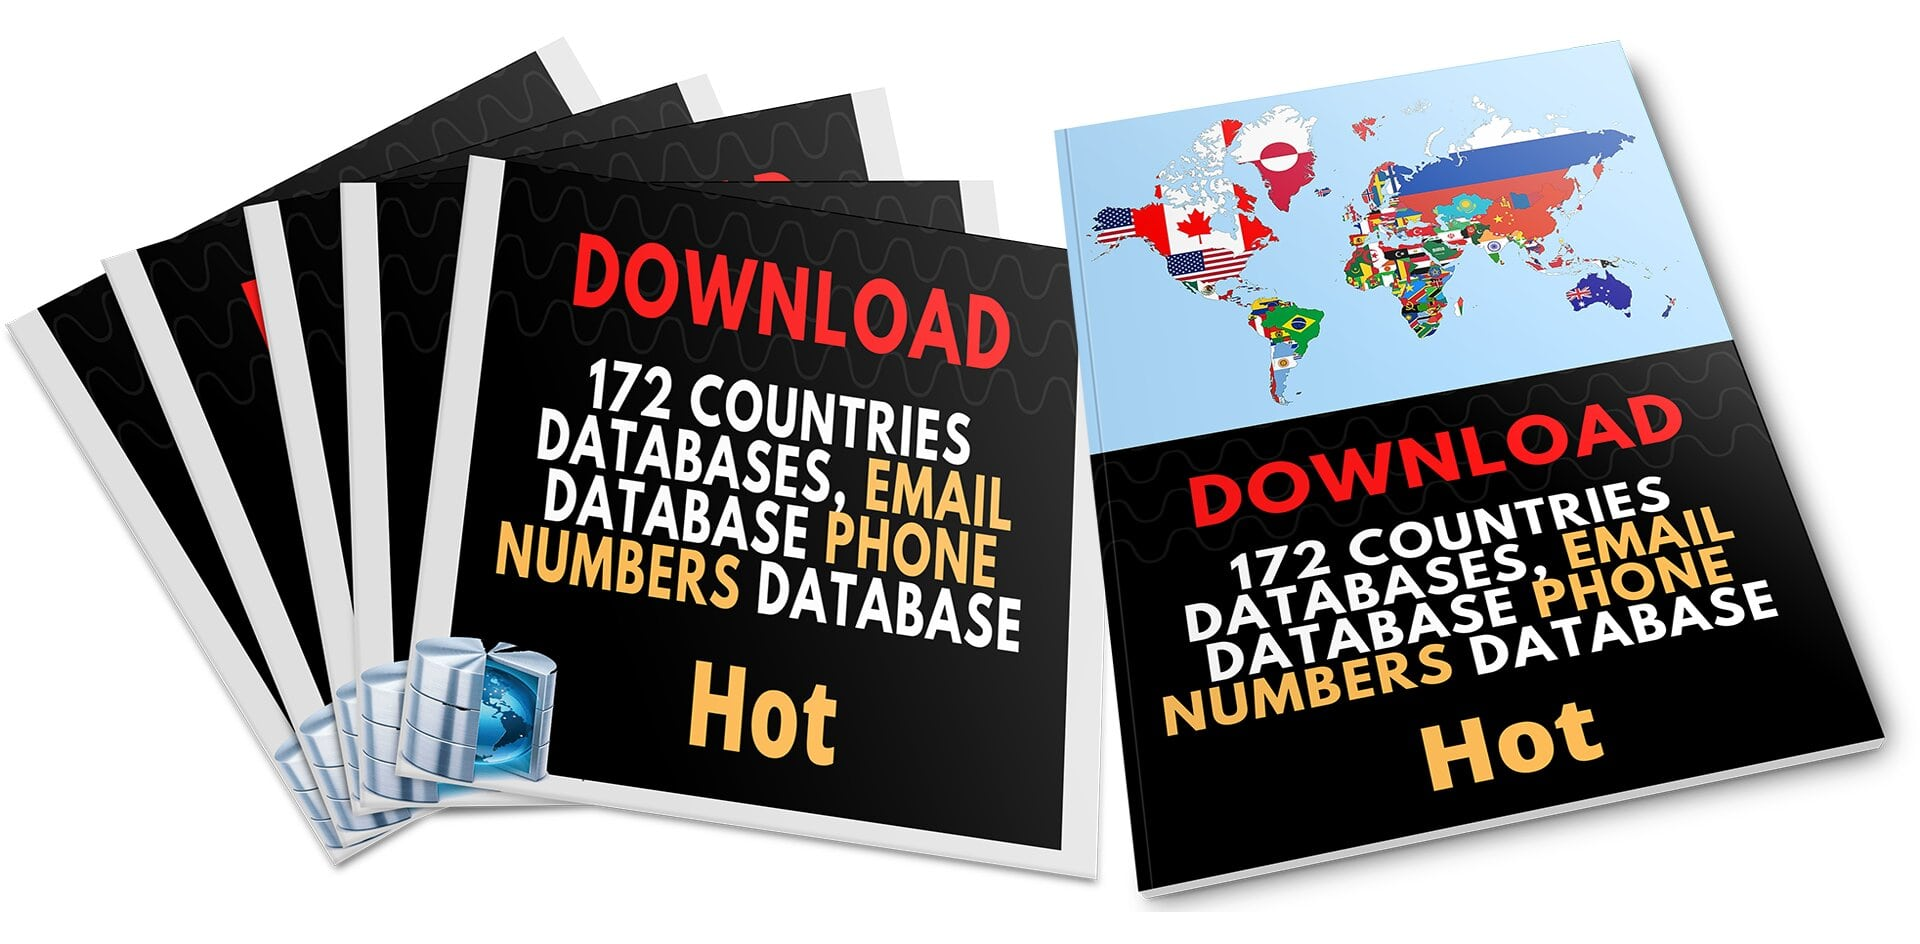 Download-172-Countries-Databases,-Email-Database-Phone-Numbers-Database-With-Names,-etc